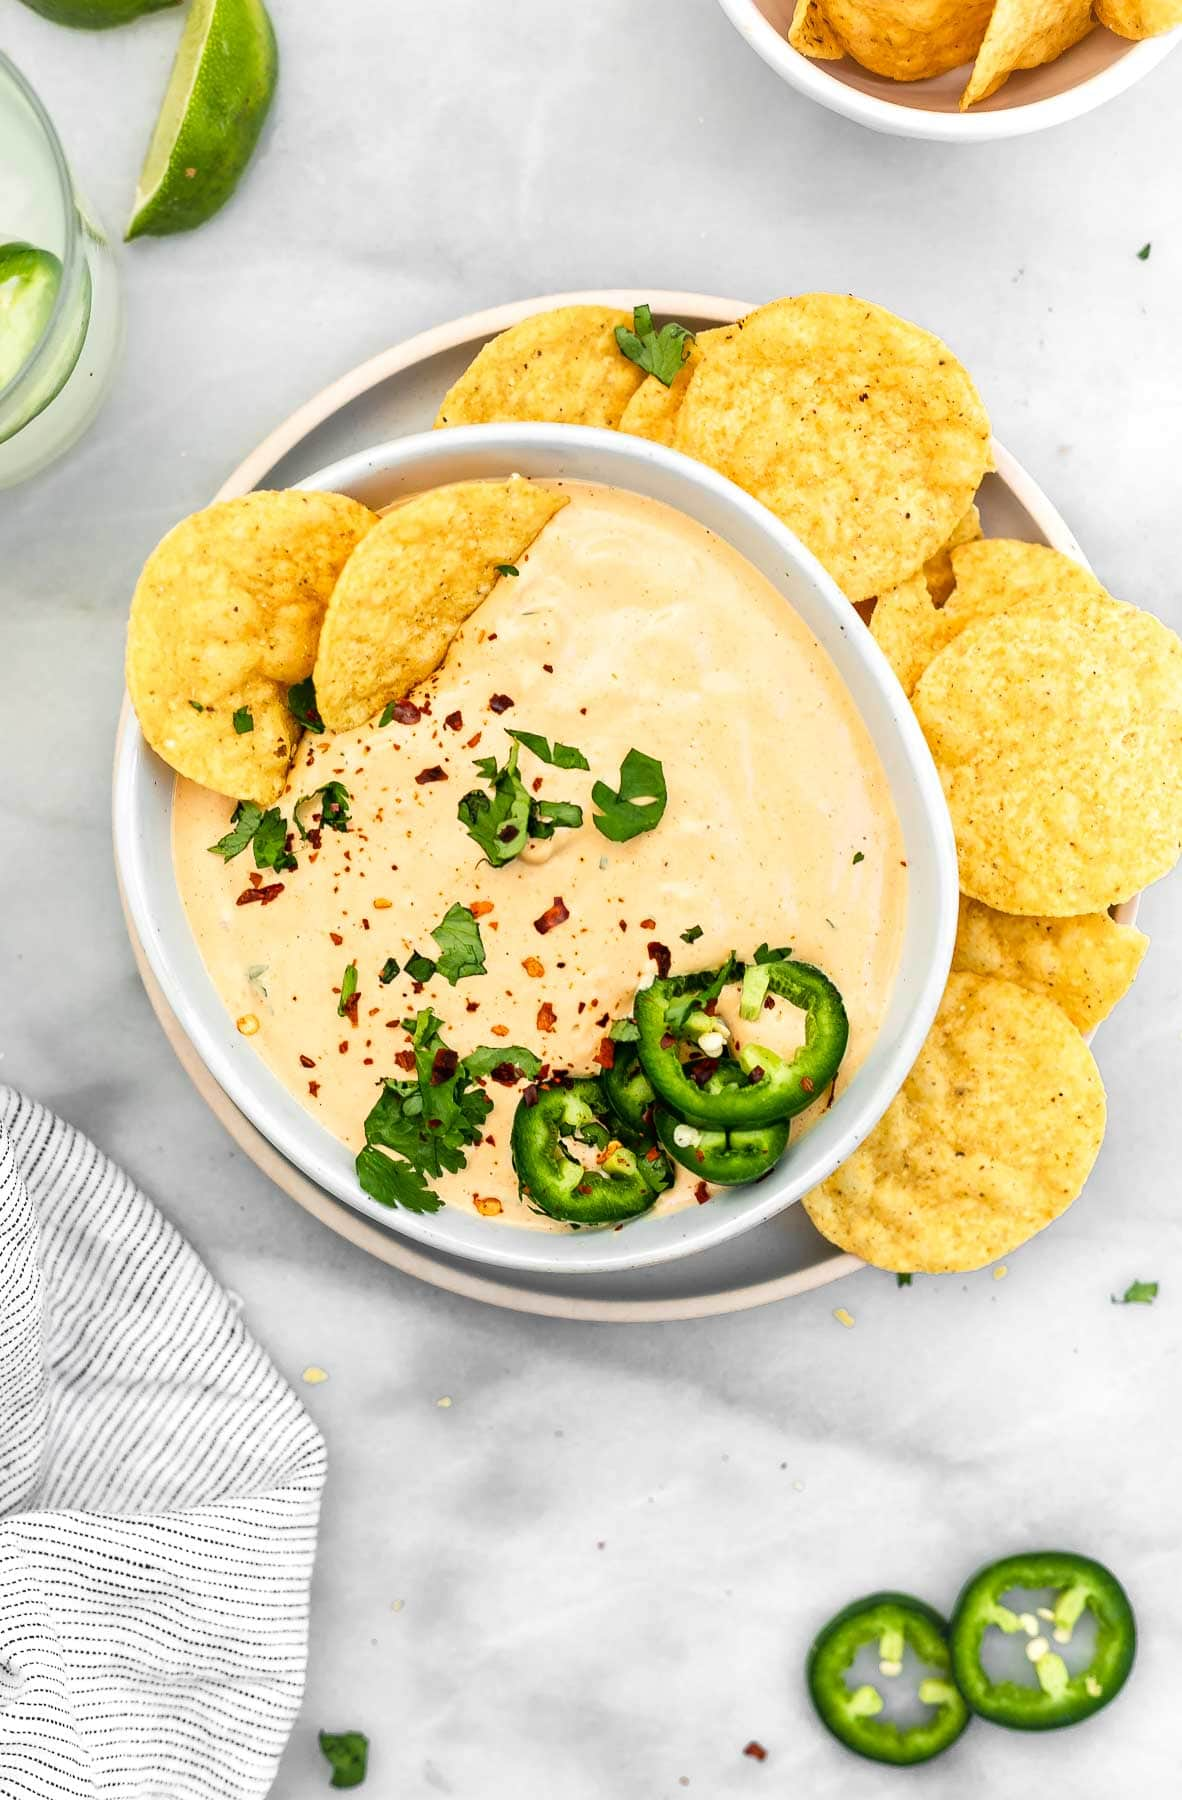 Cashew queso in a bowl with jalapeno.